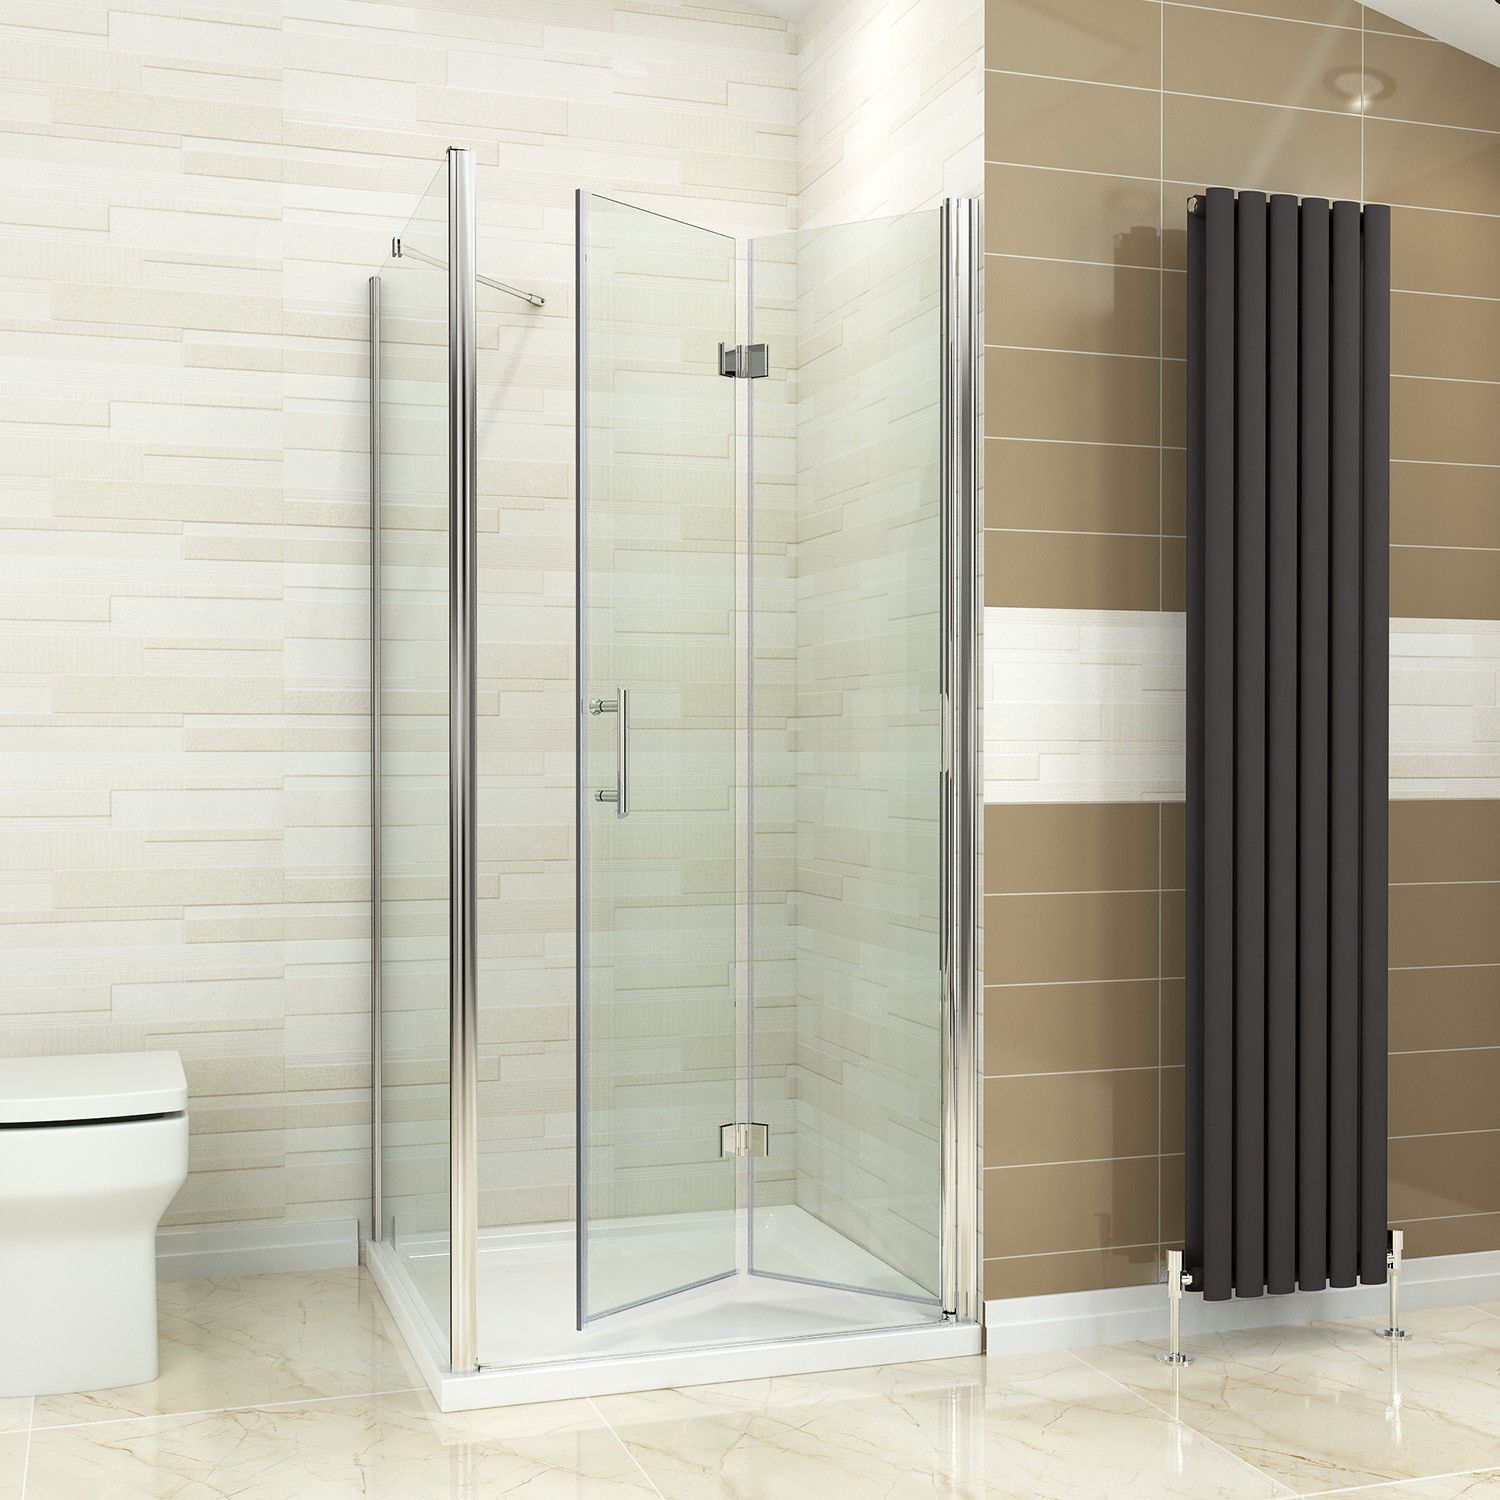 700 760 800 900 1000 Frameless Bi Fold Shower Door Enclosure Side Panel And Tray Ebay Bifold Shower Door Frameless Shower Enclosures Shower Doors